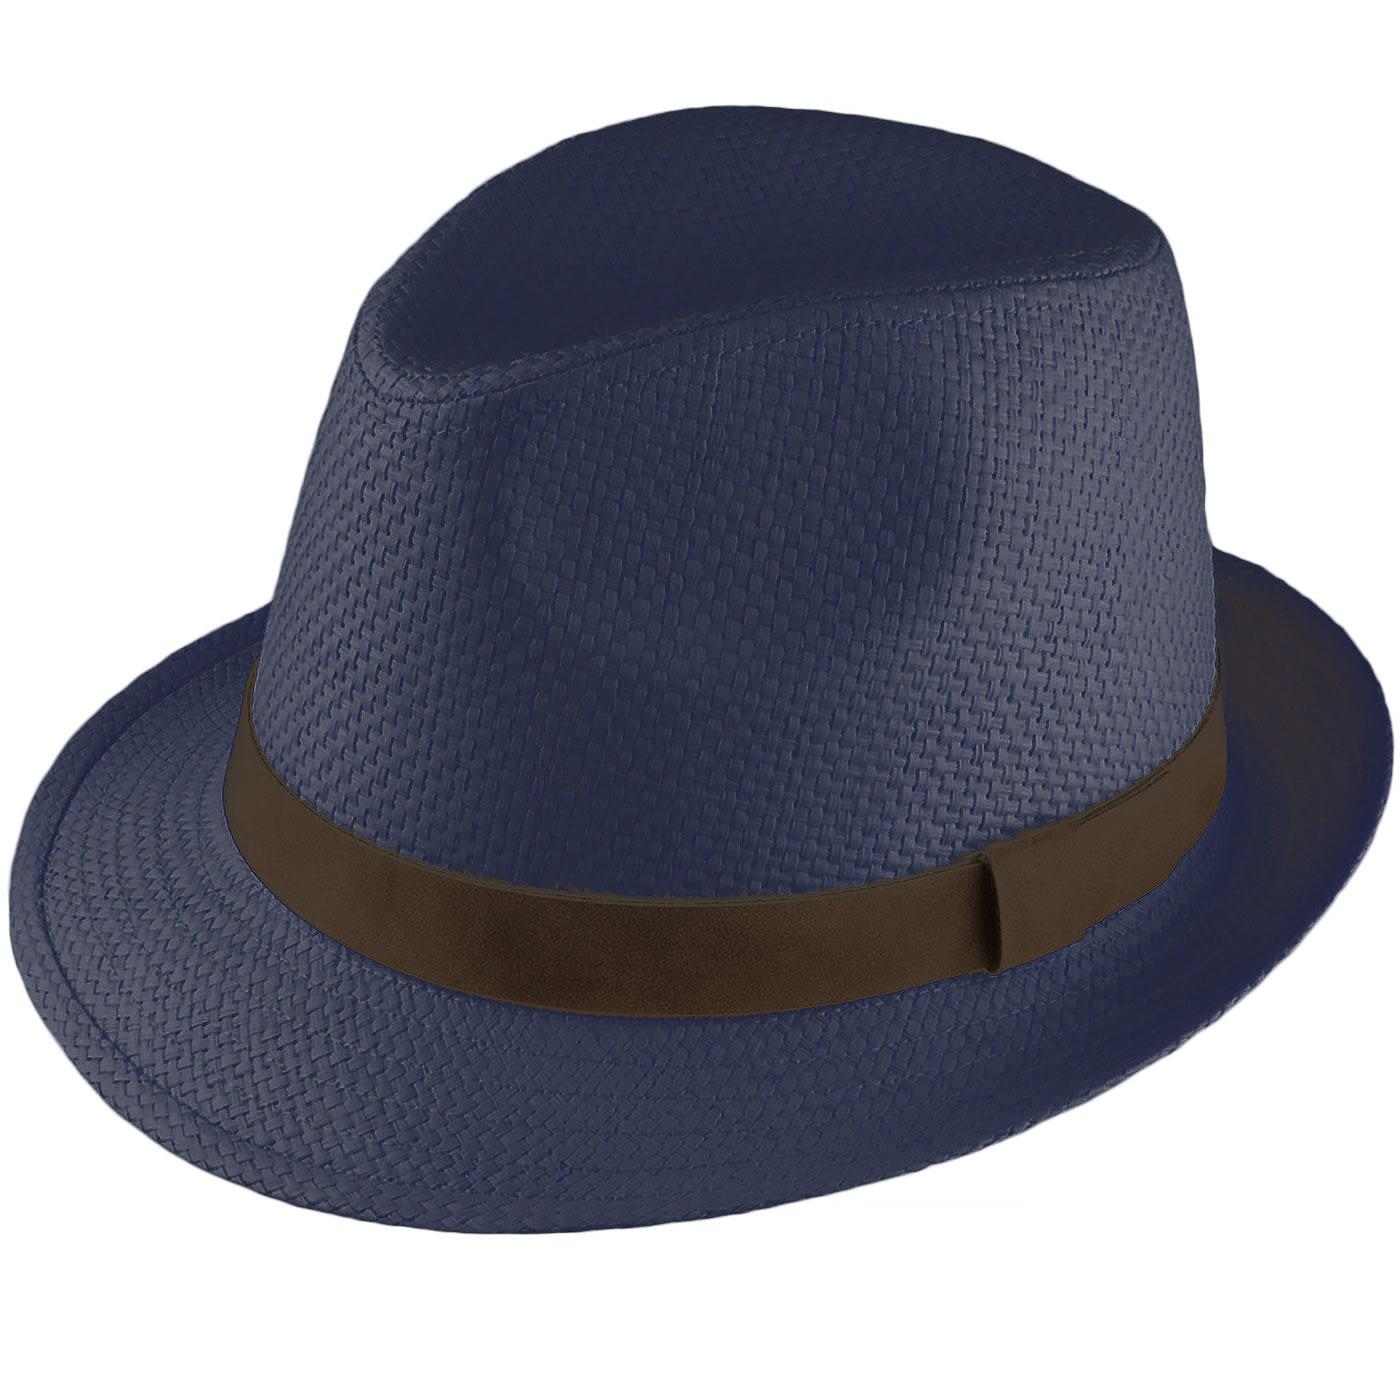 a8906ecc FAILSWORTH Men's Retro 70s Summer Straw Trilby Hat Navy